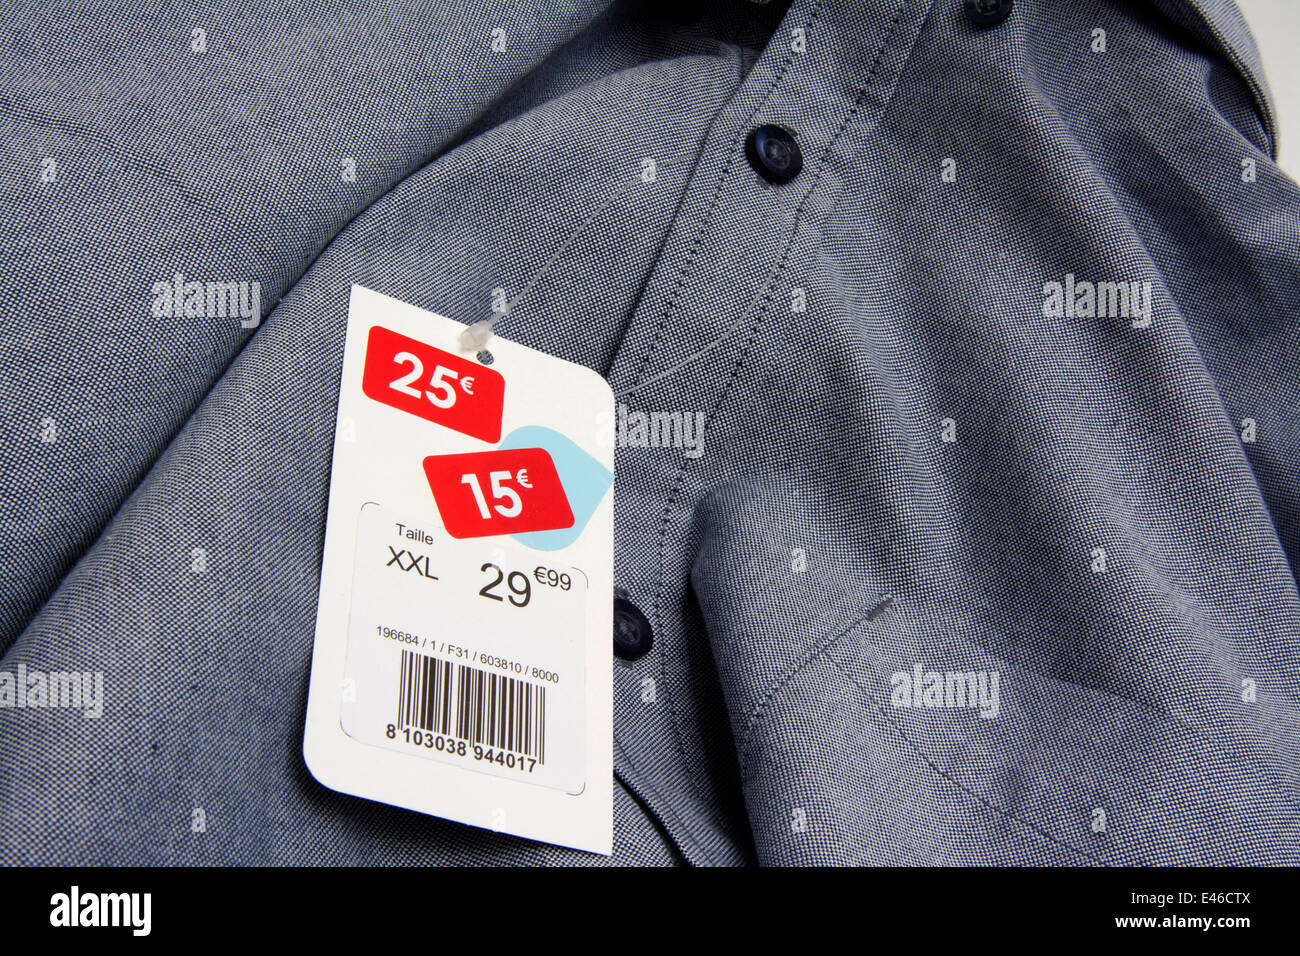 Clothing in the sales in Europe - Stock Image